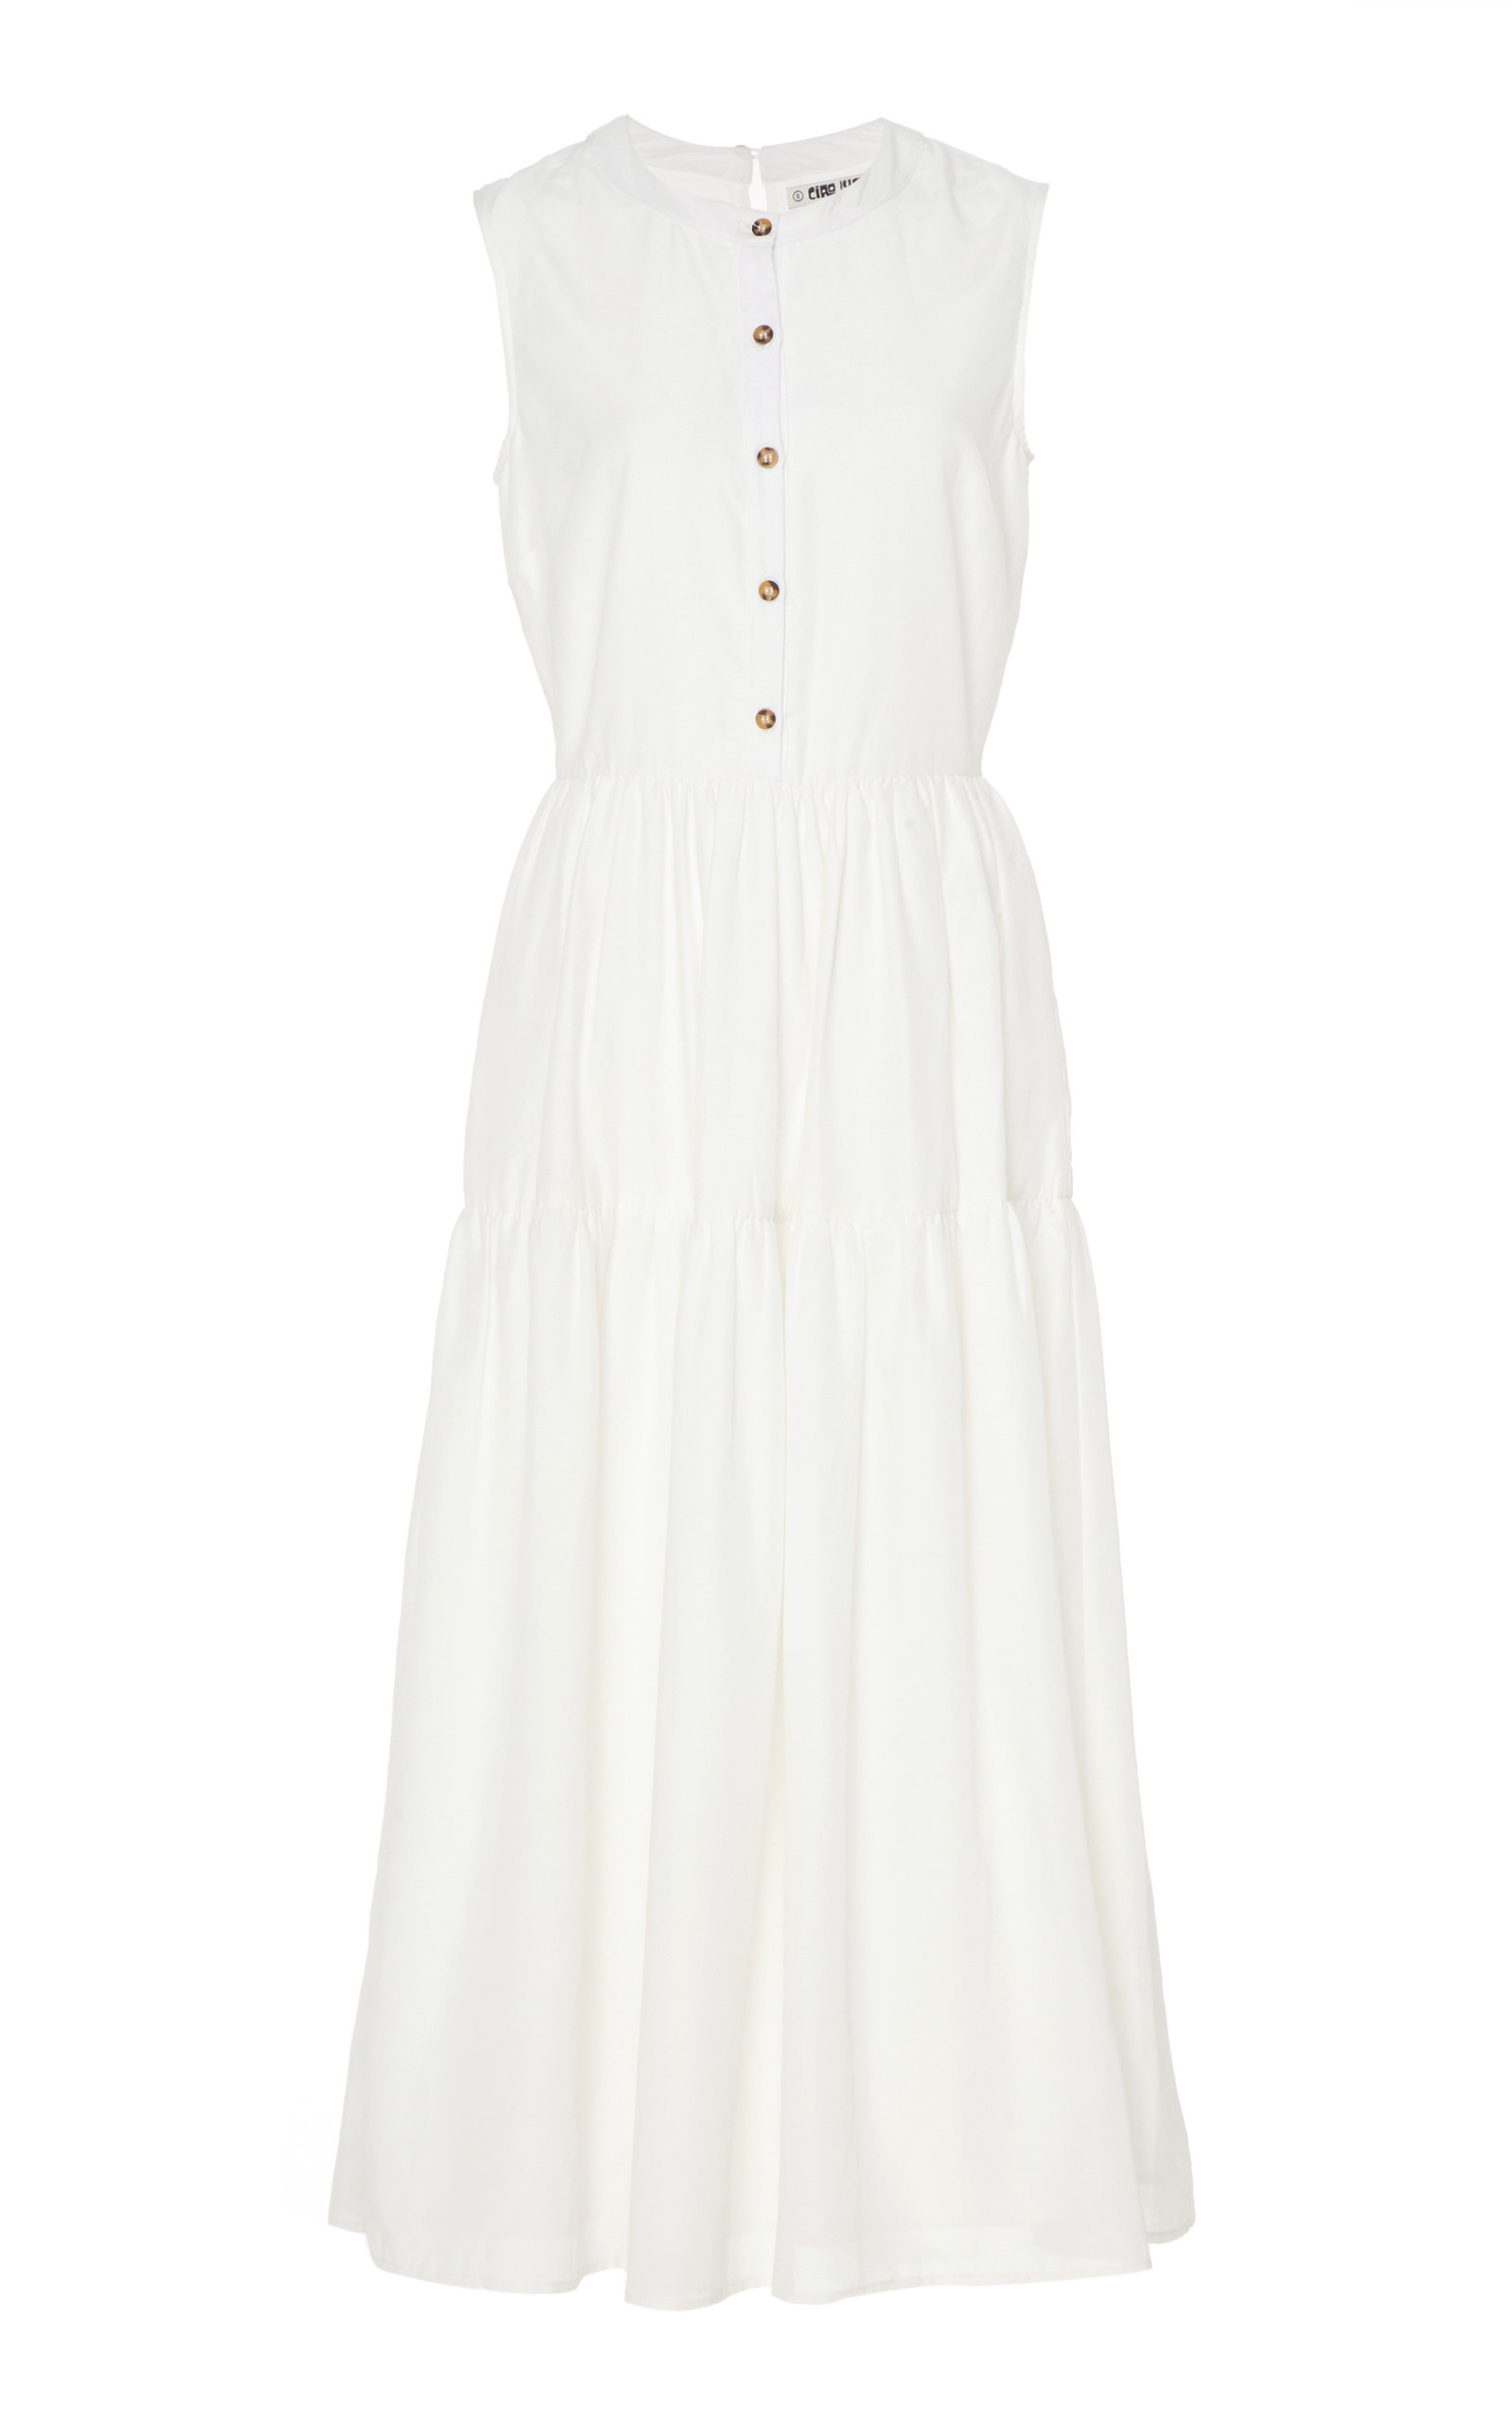 Buy Ciao Lucia Freya Cotton-Blend Dress online, shop Ciao Lucia at the best price